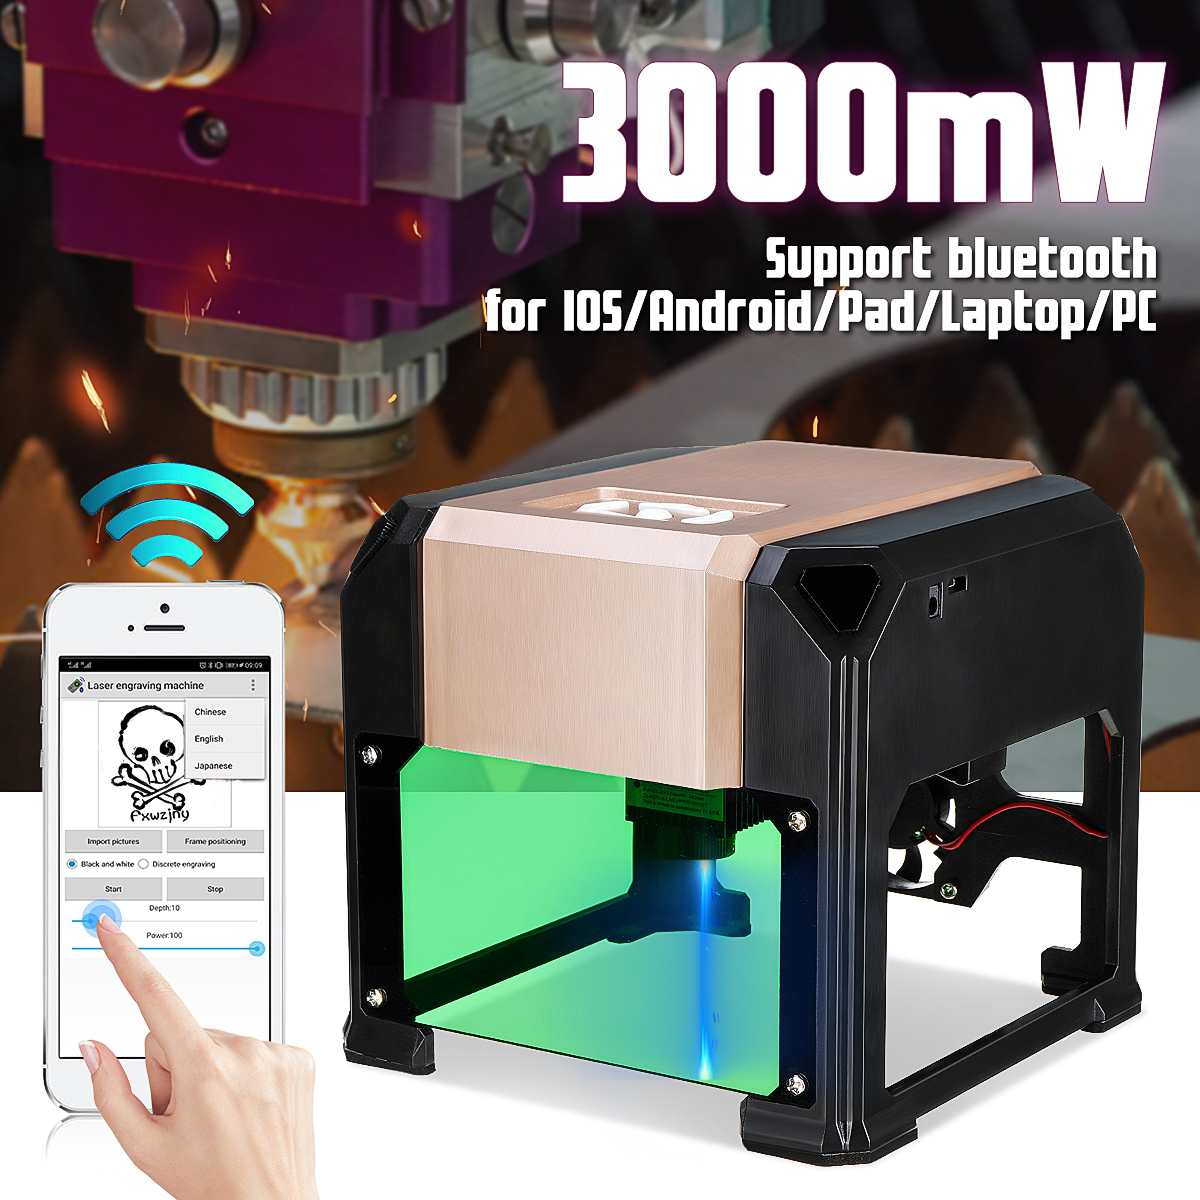 Bluetooth Control 3000mW Professional DIY Desktop Mini CNC Laser Engraver Cutter Engraving Wood Cutting Machine Router 110-220V